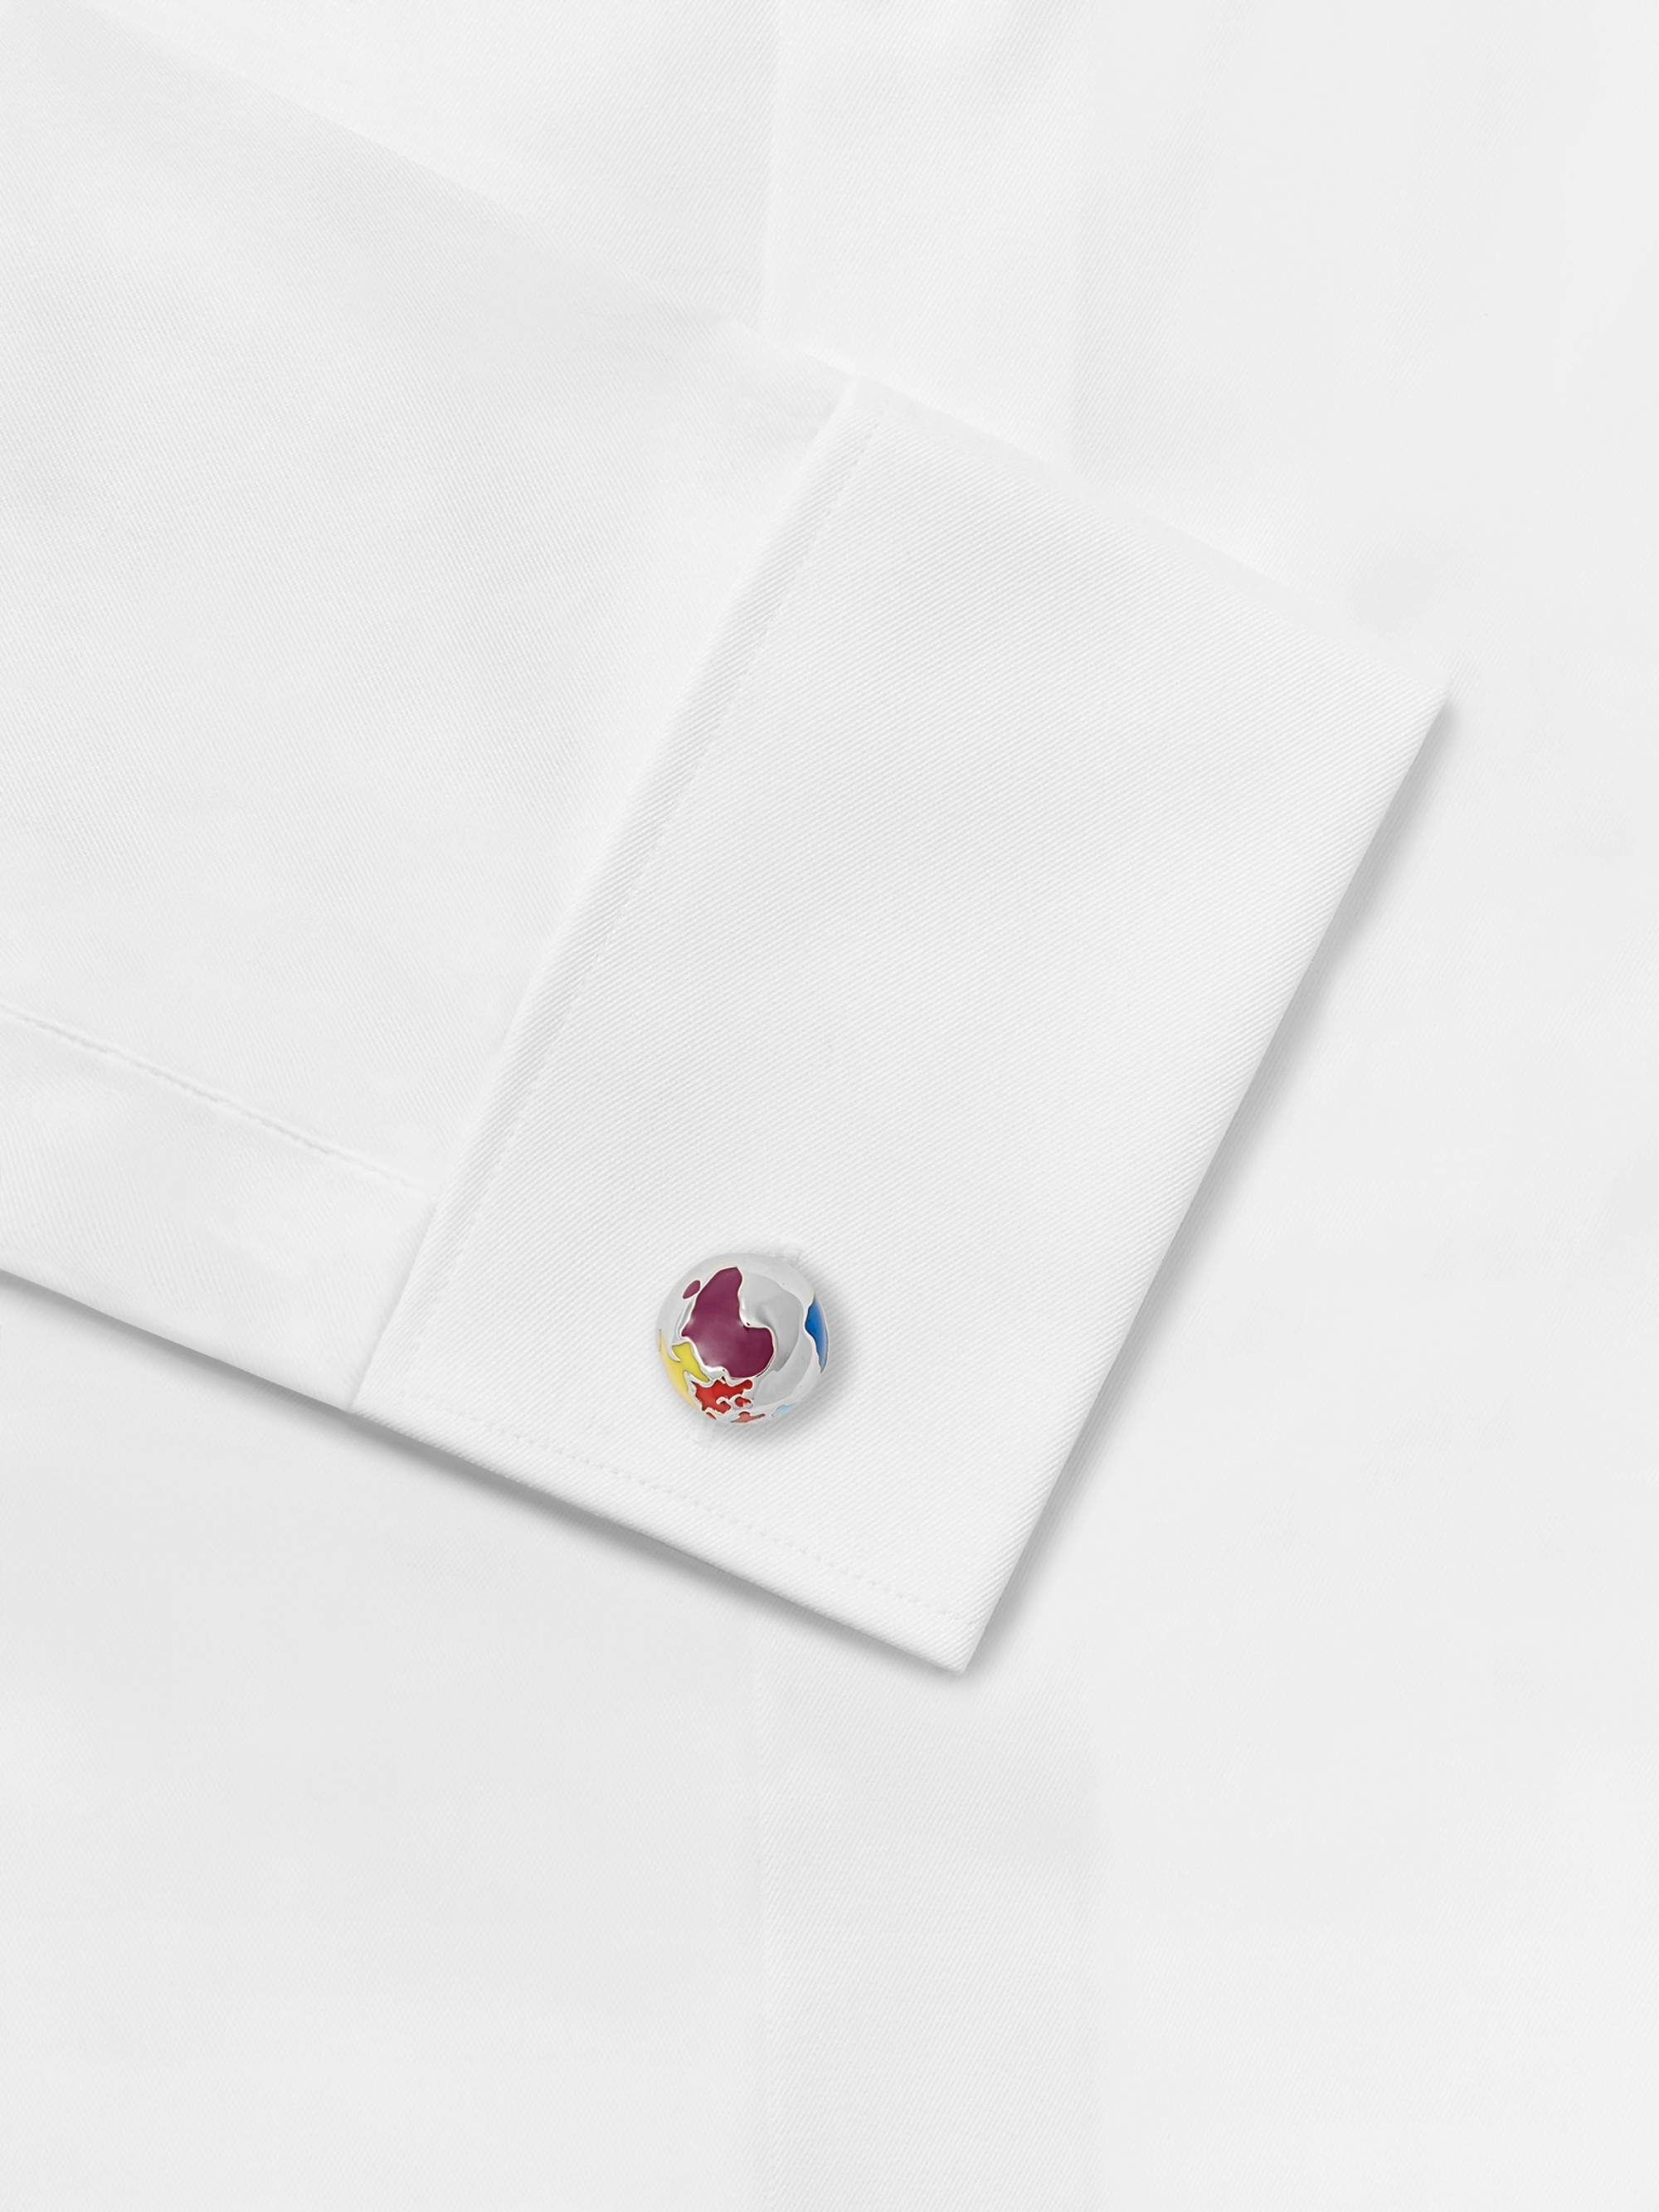 Paul Smith Globe Silver-Tone and Enamel Cufflinks